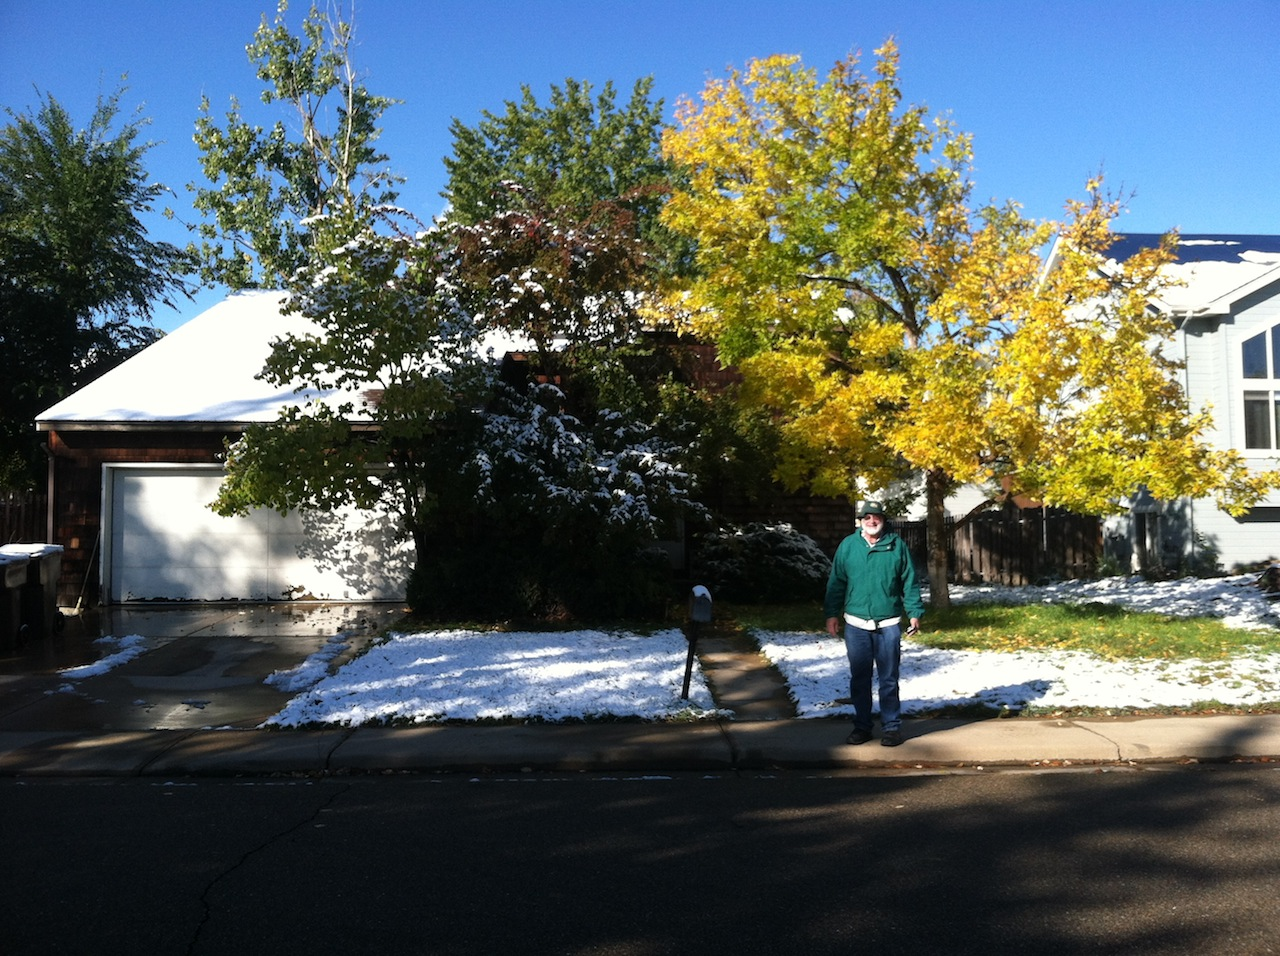 A surprise October snowfall in Boulder, and Philip's brother Bob's house